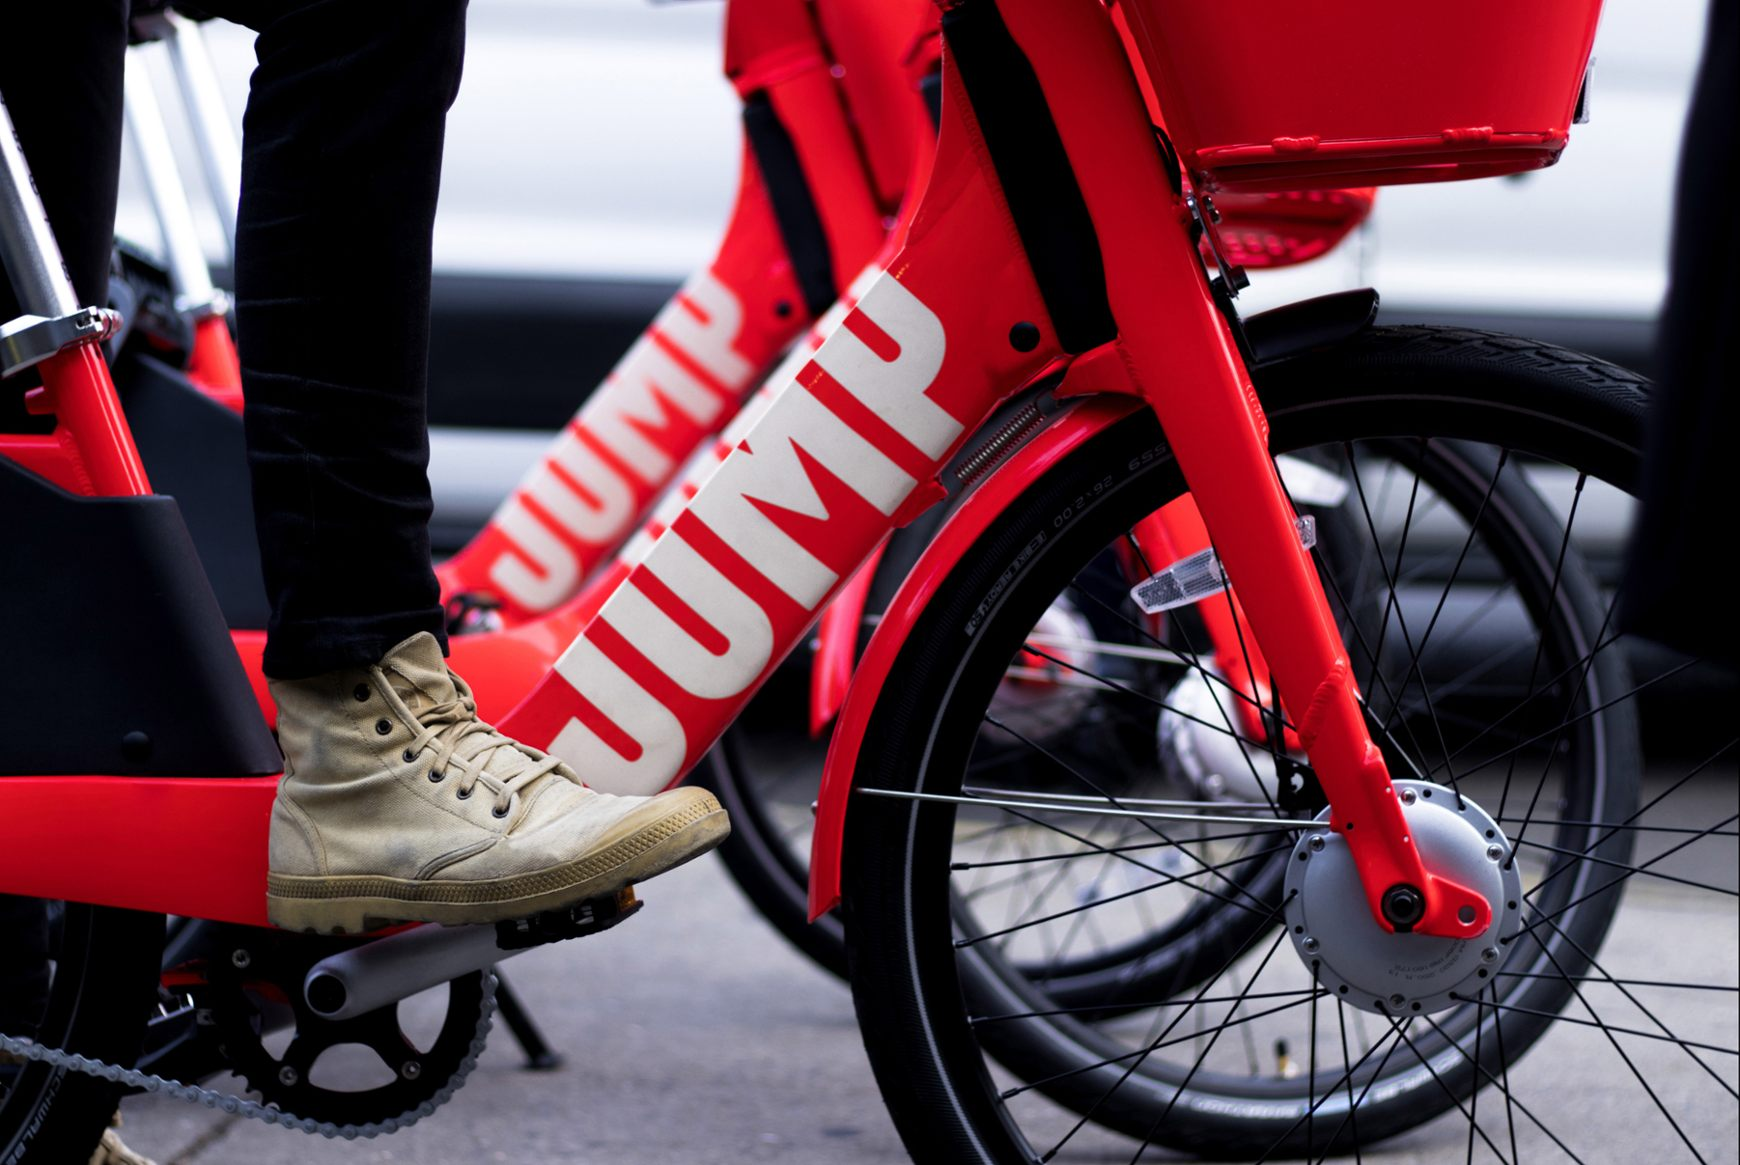 Uber's acquisition of Jump bikes